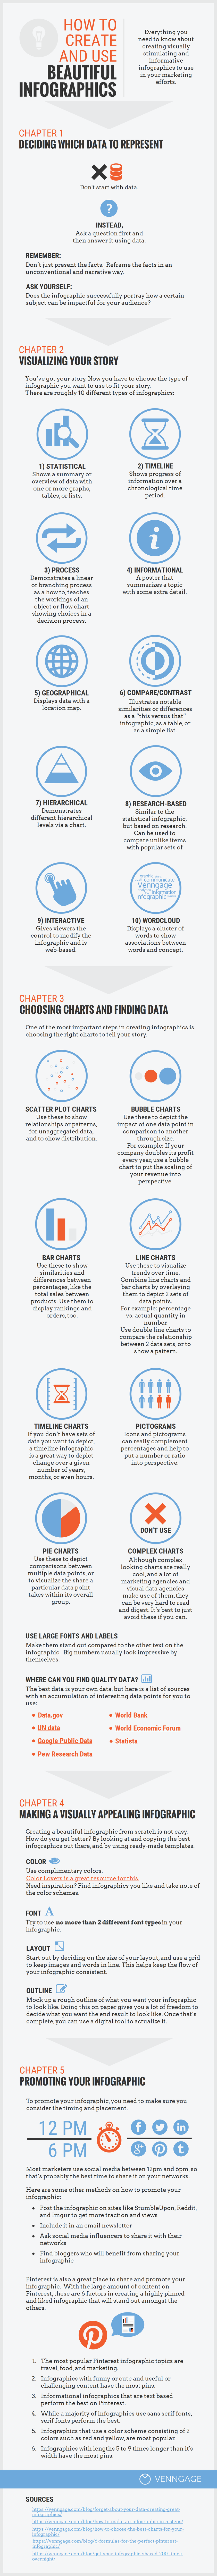 HubSpot-How-to-Create-Infographics-Ebook